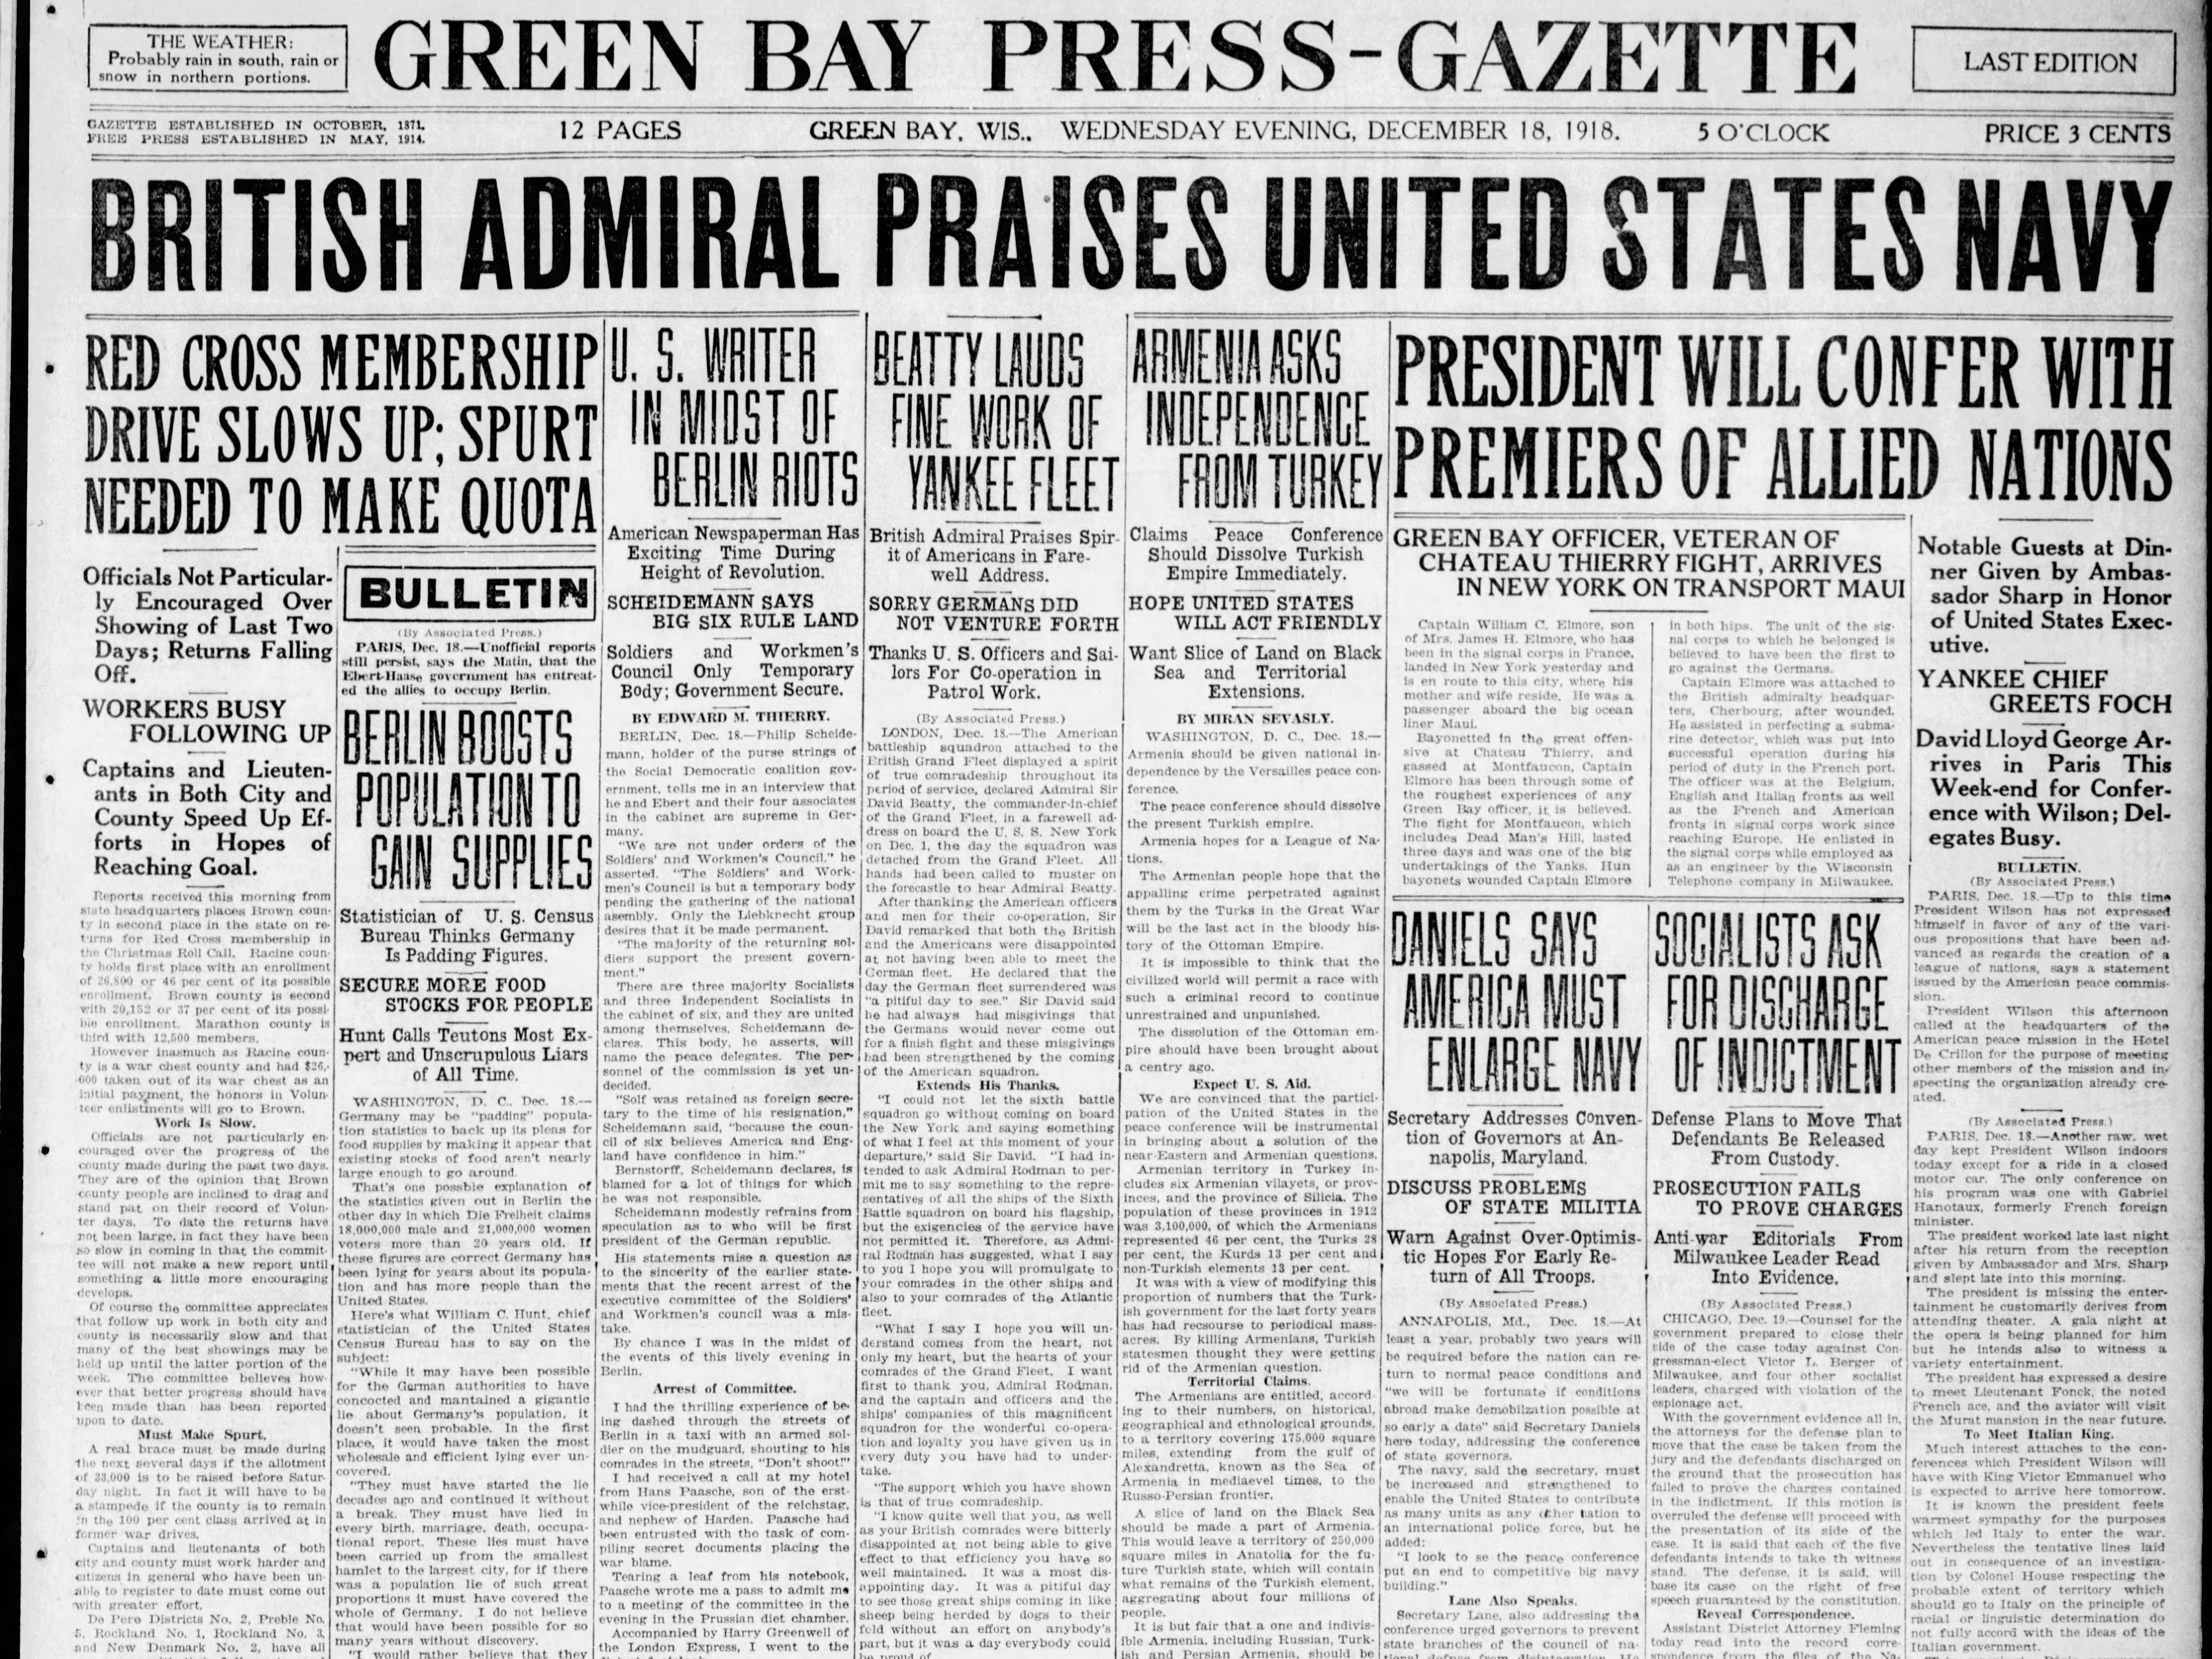 Today in History: Dec. 18, 1918